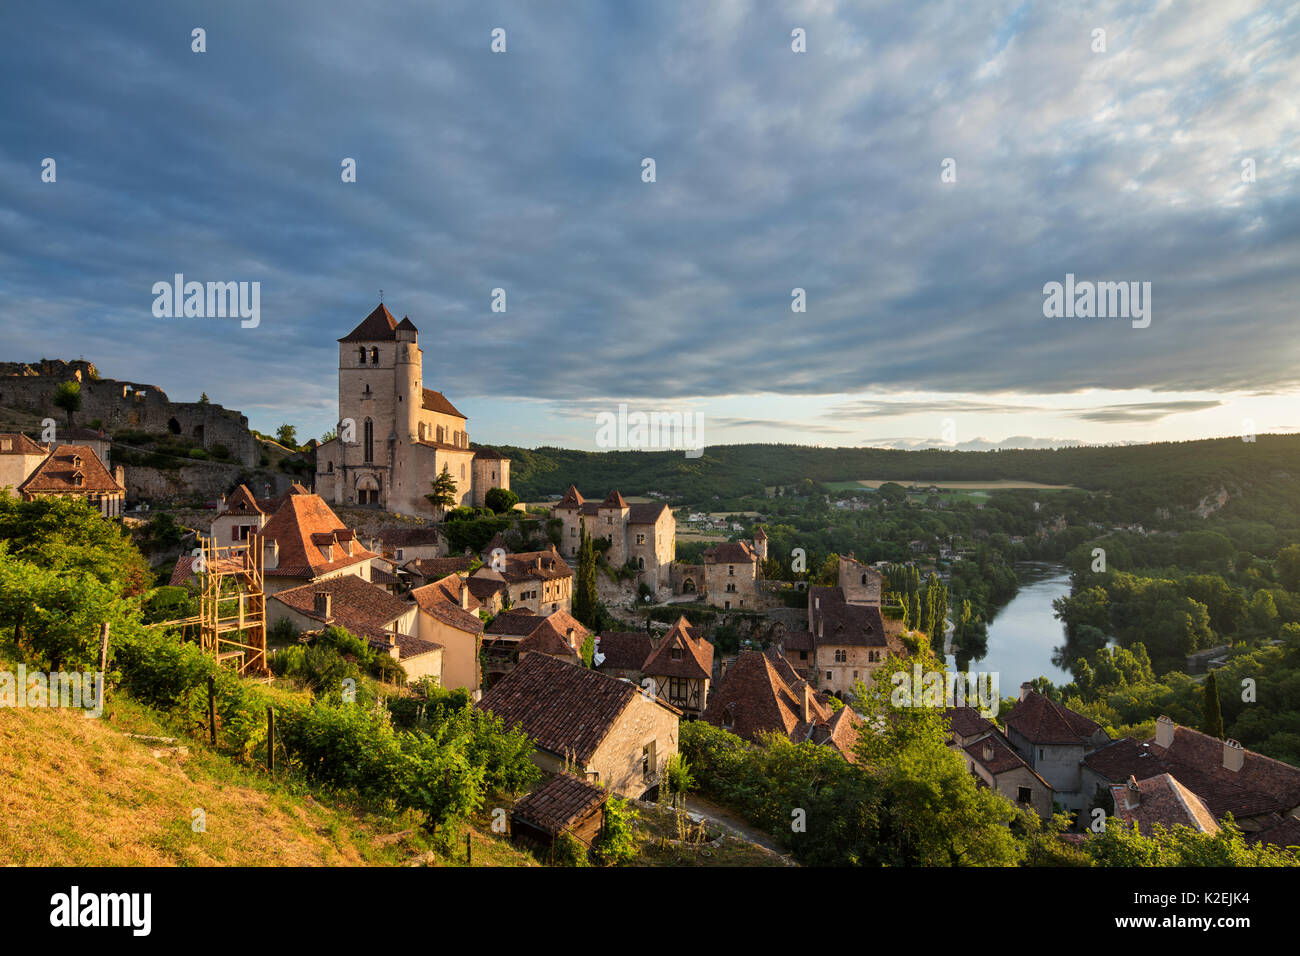 St Cirque Lapopie at dawn, Lot Valley, Quercy, France, July 2015. - Stock Image